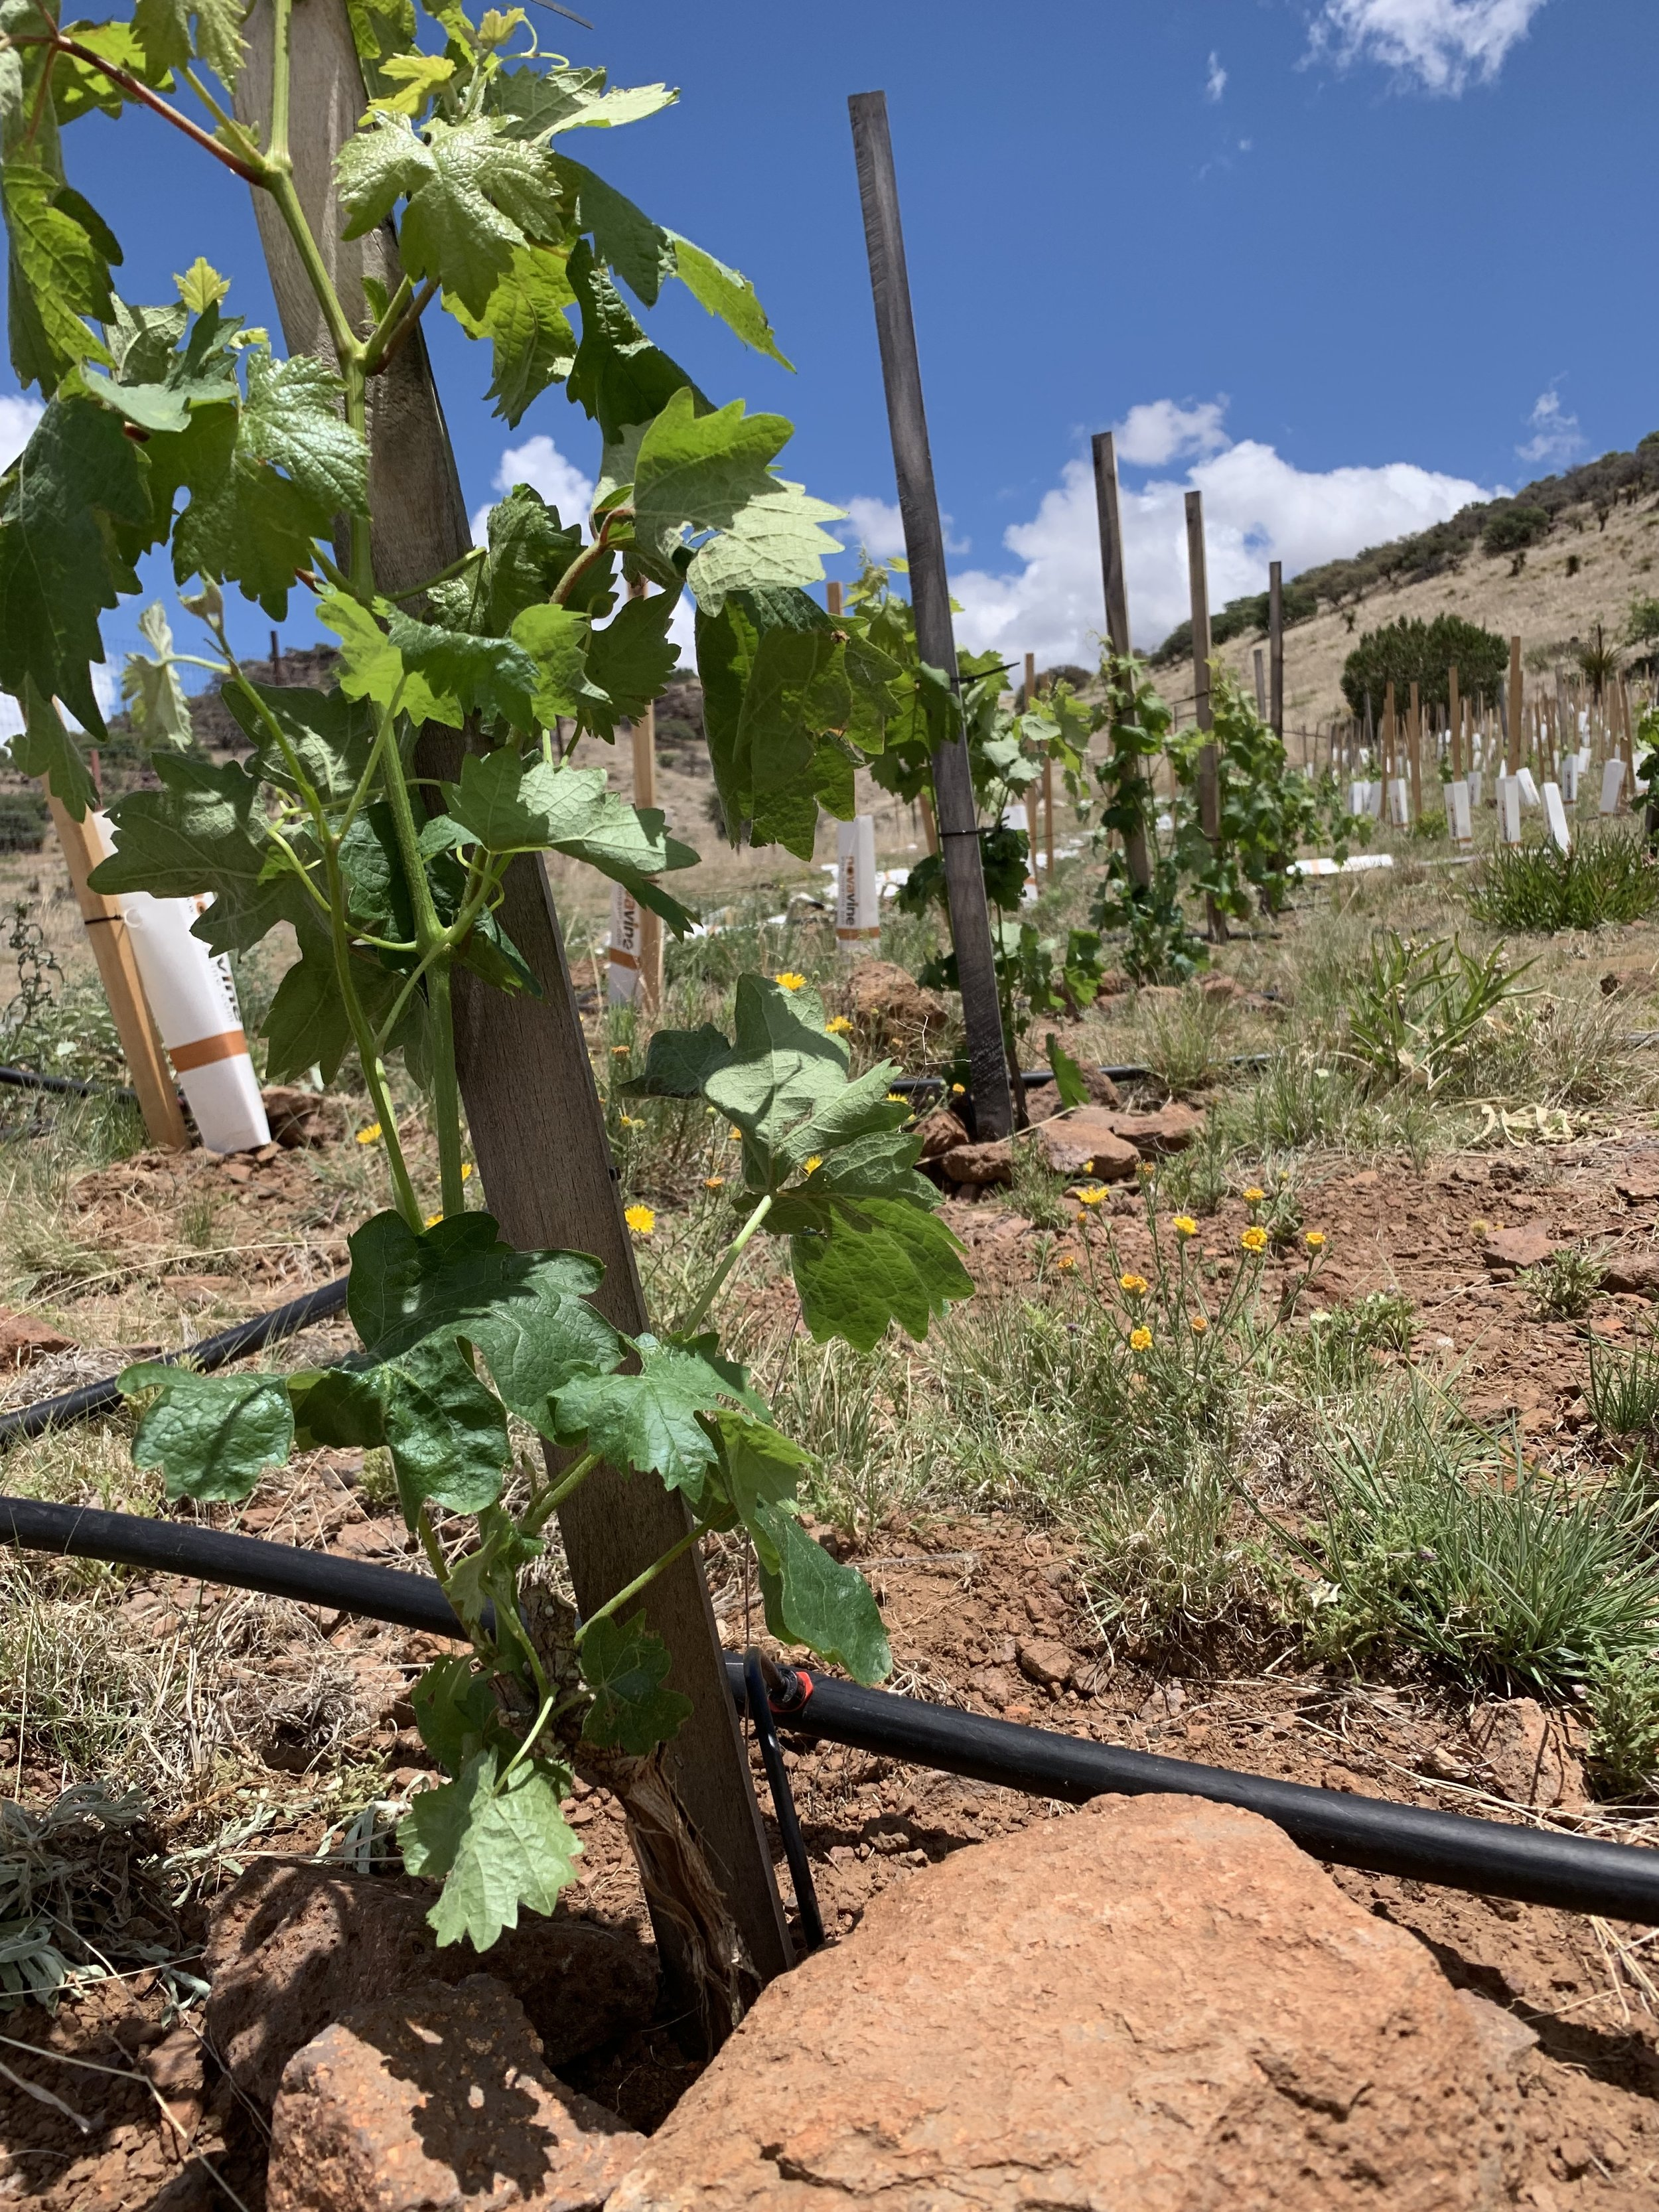 The few vines planted in 2018 and now in their second year grew quite vigorously this spring.